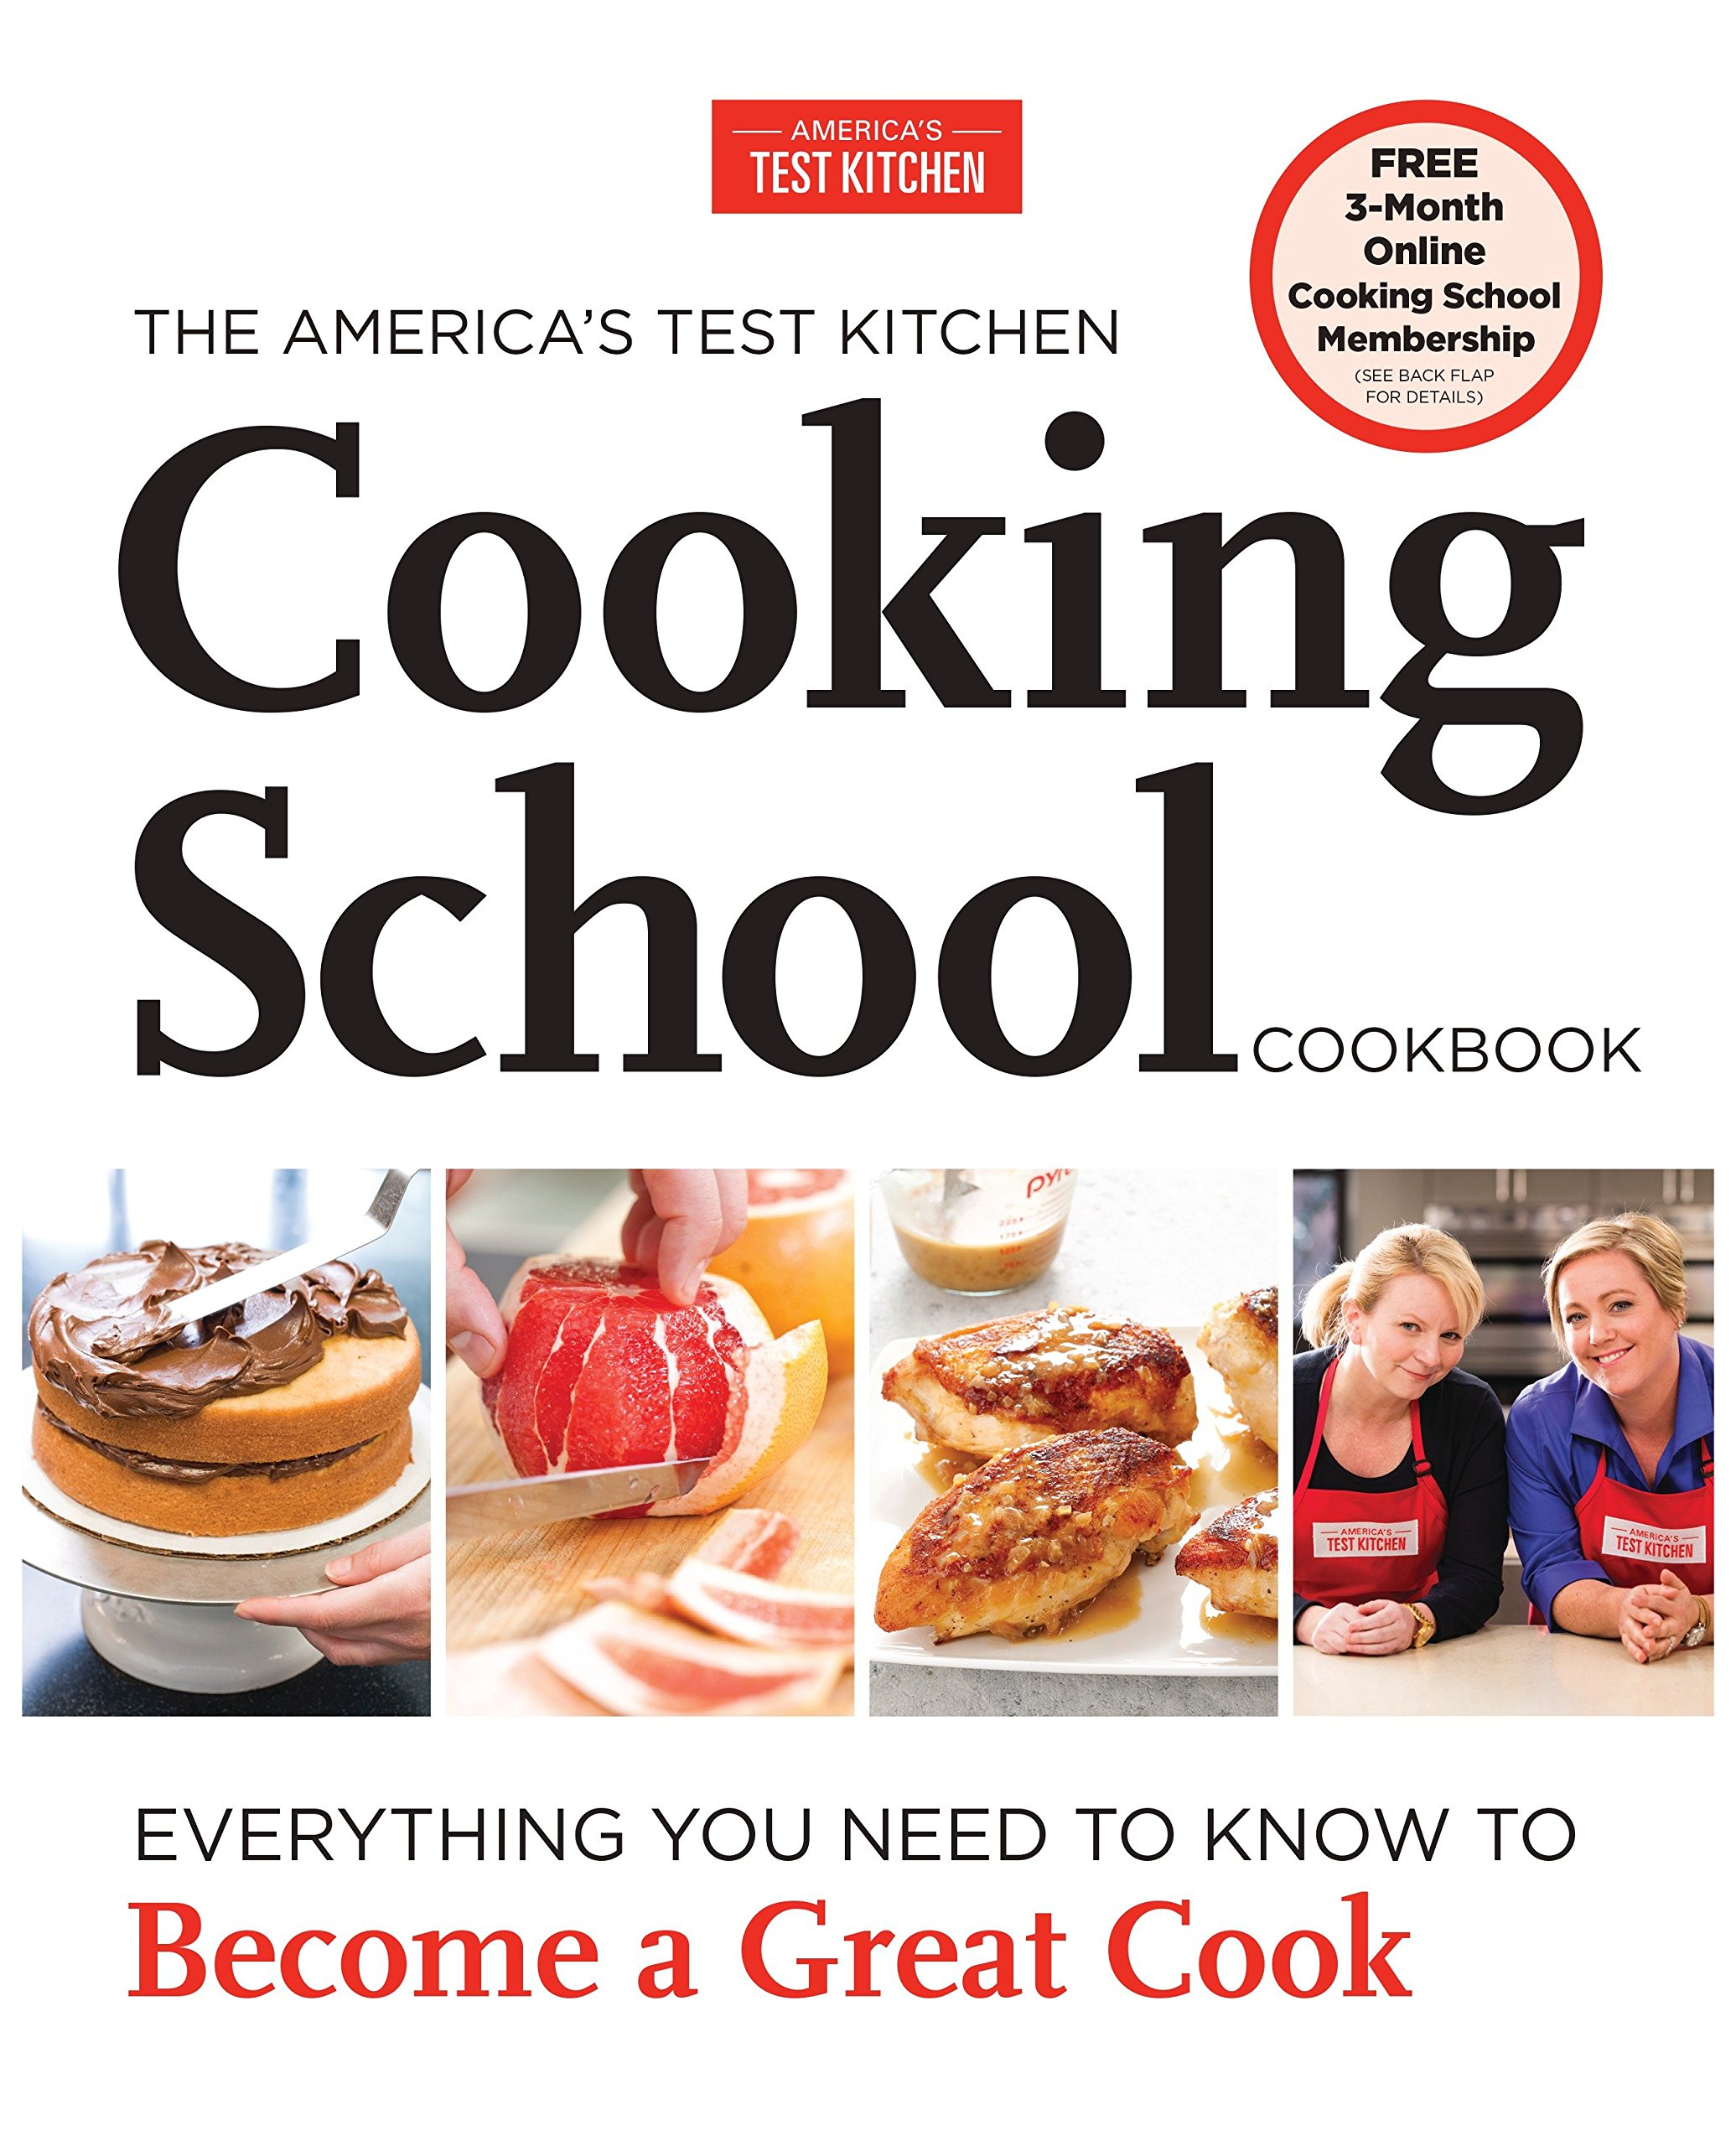 The America's Test Kitchen Cooking School Cookbook: Everything You Need to Know to Become a Great Cook Hardcover – October 15, 2013 America' s Test Kitchen 1936493527 Cookbooks Cooking.